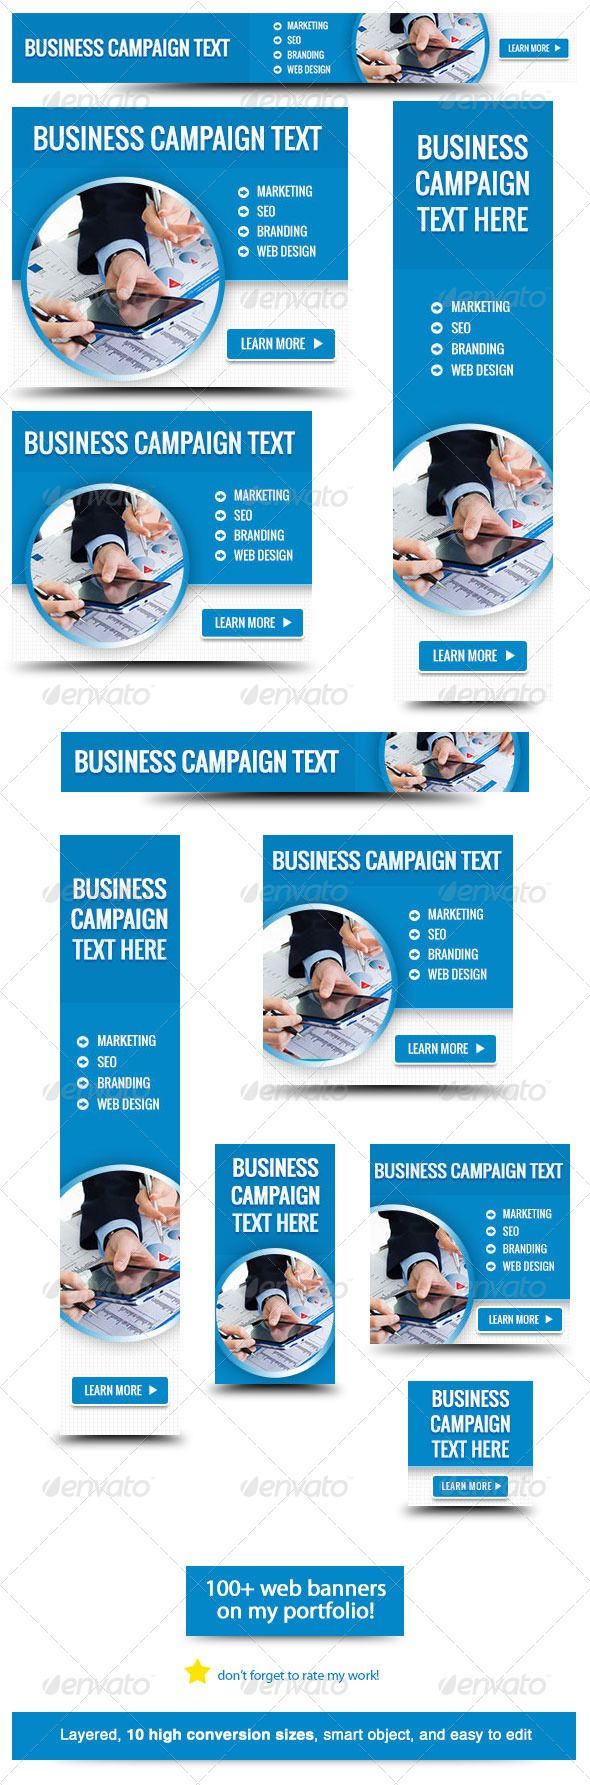 use this web banner for your business campaign banner sizes 1